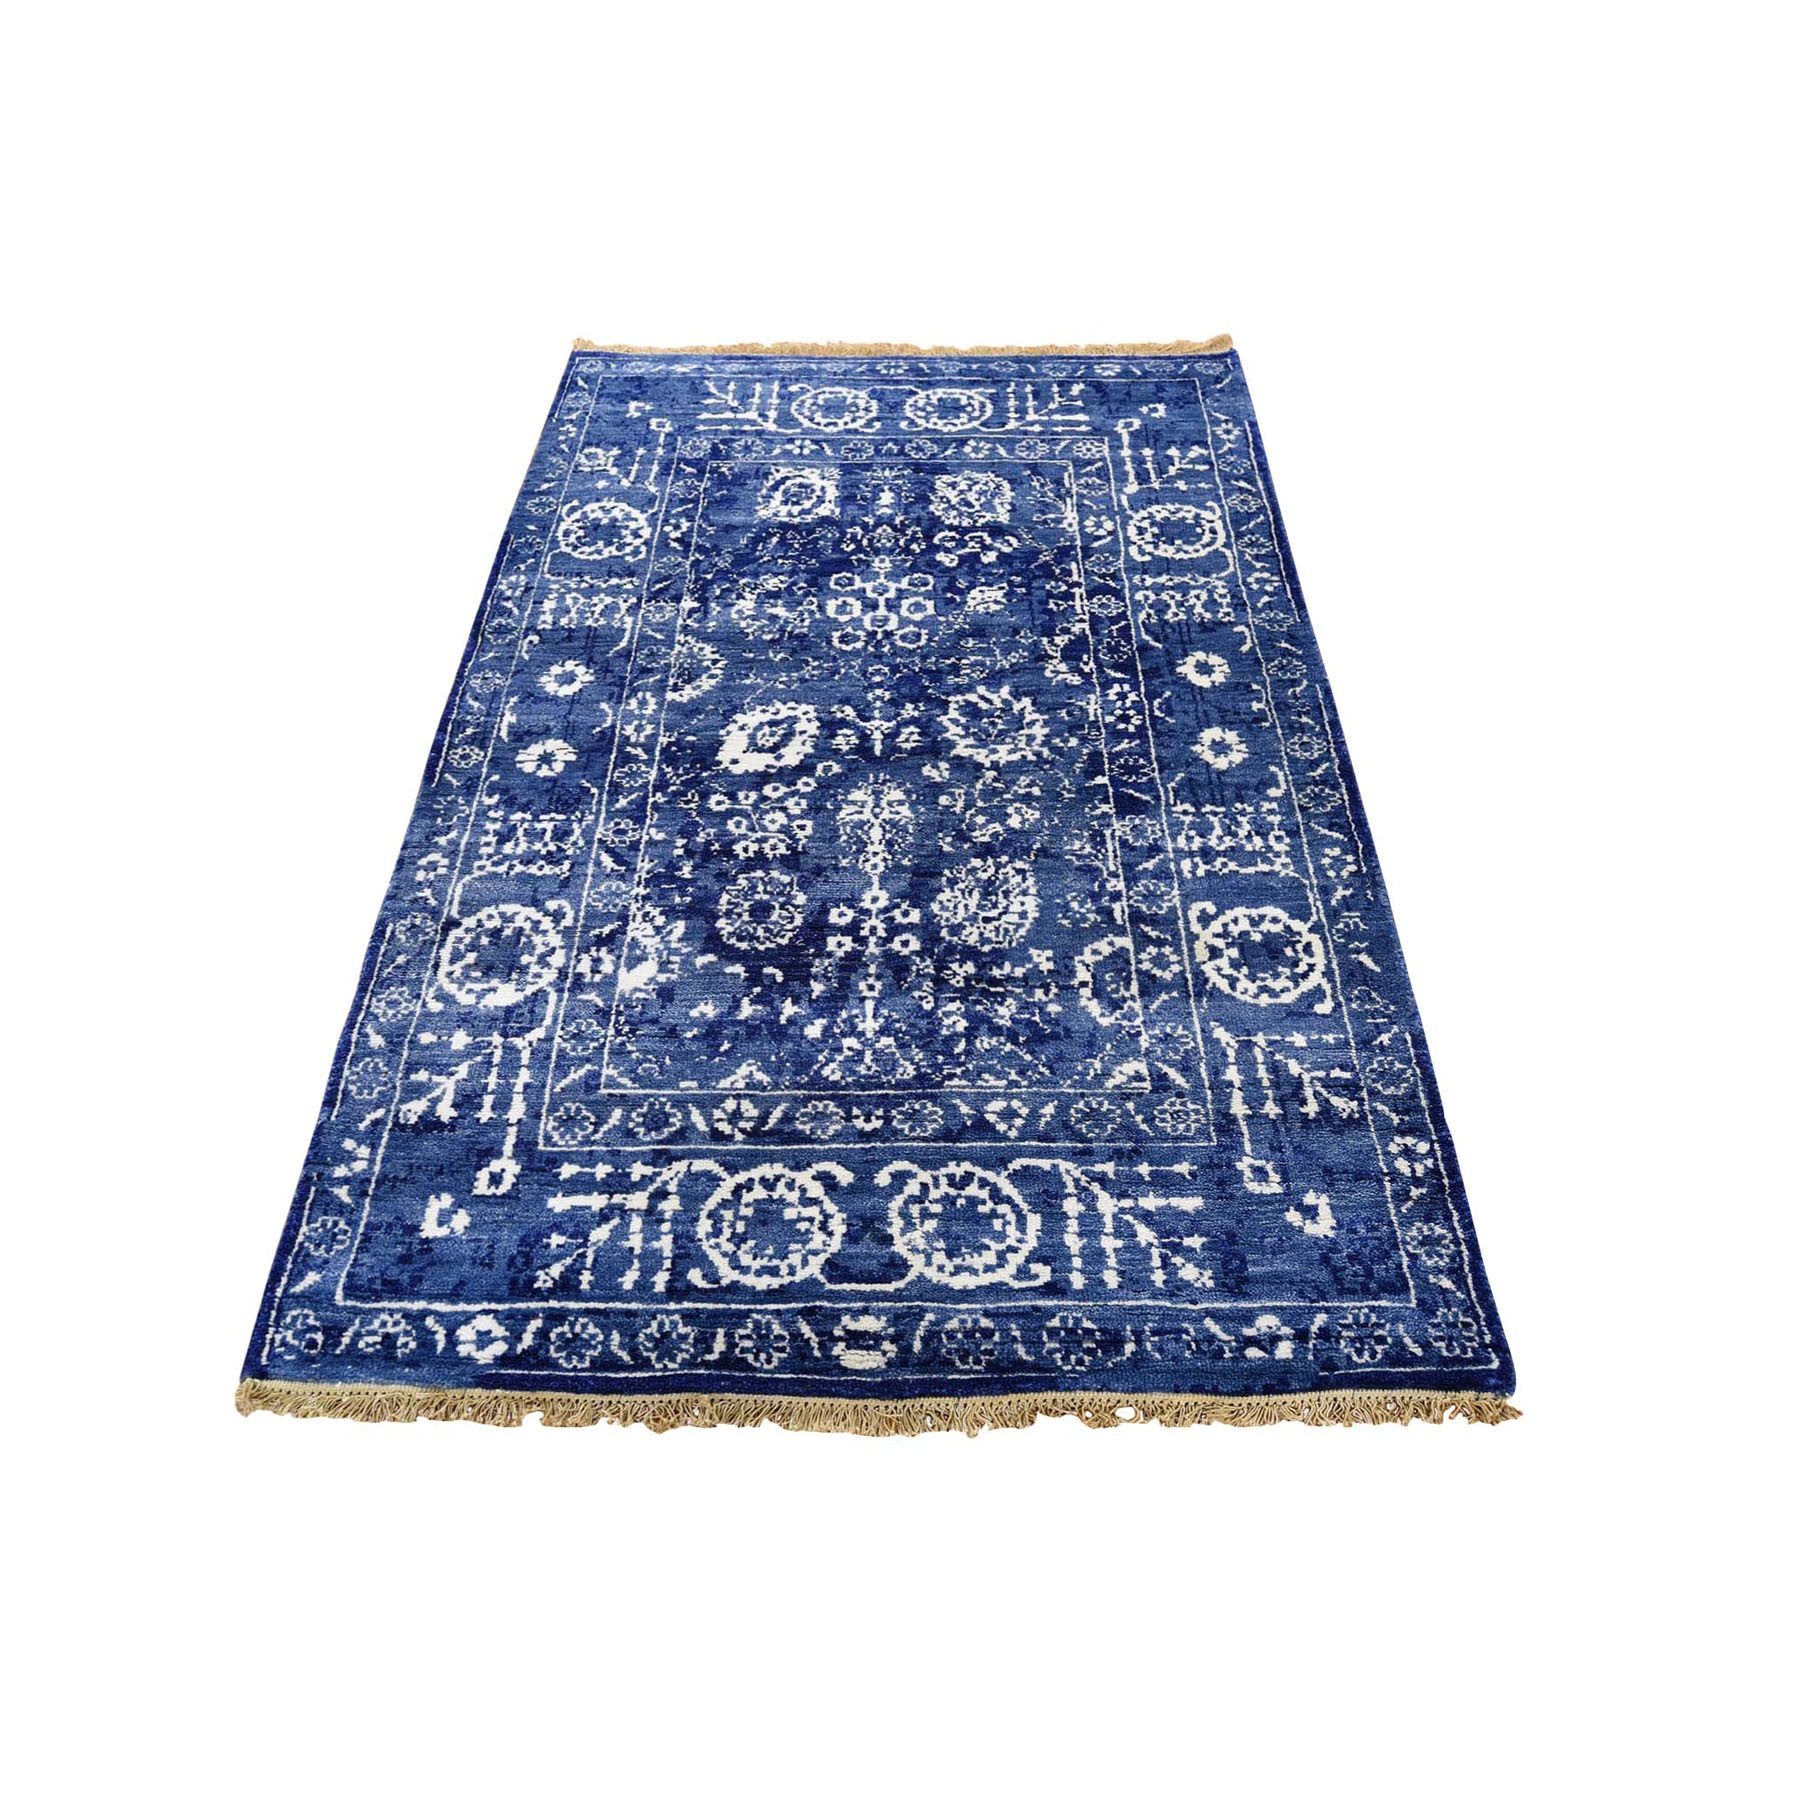 "3'1""x5' Blue Wool and Silk Tone On Tone Tabriz Hand Knotted Oriental Rug"